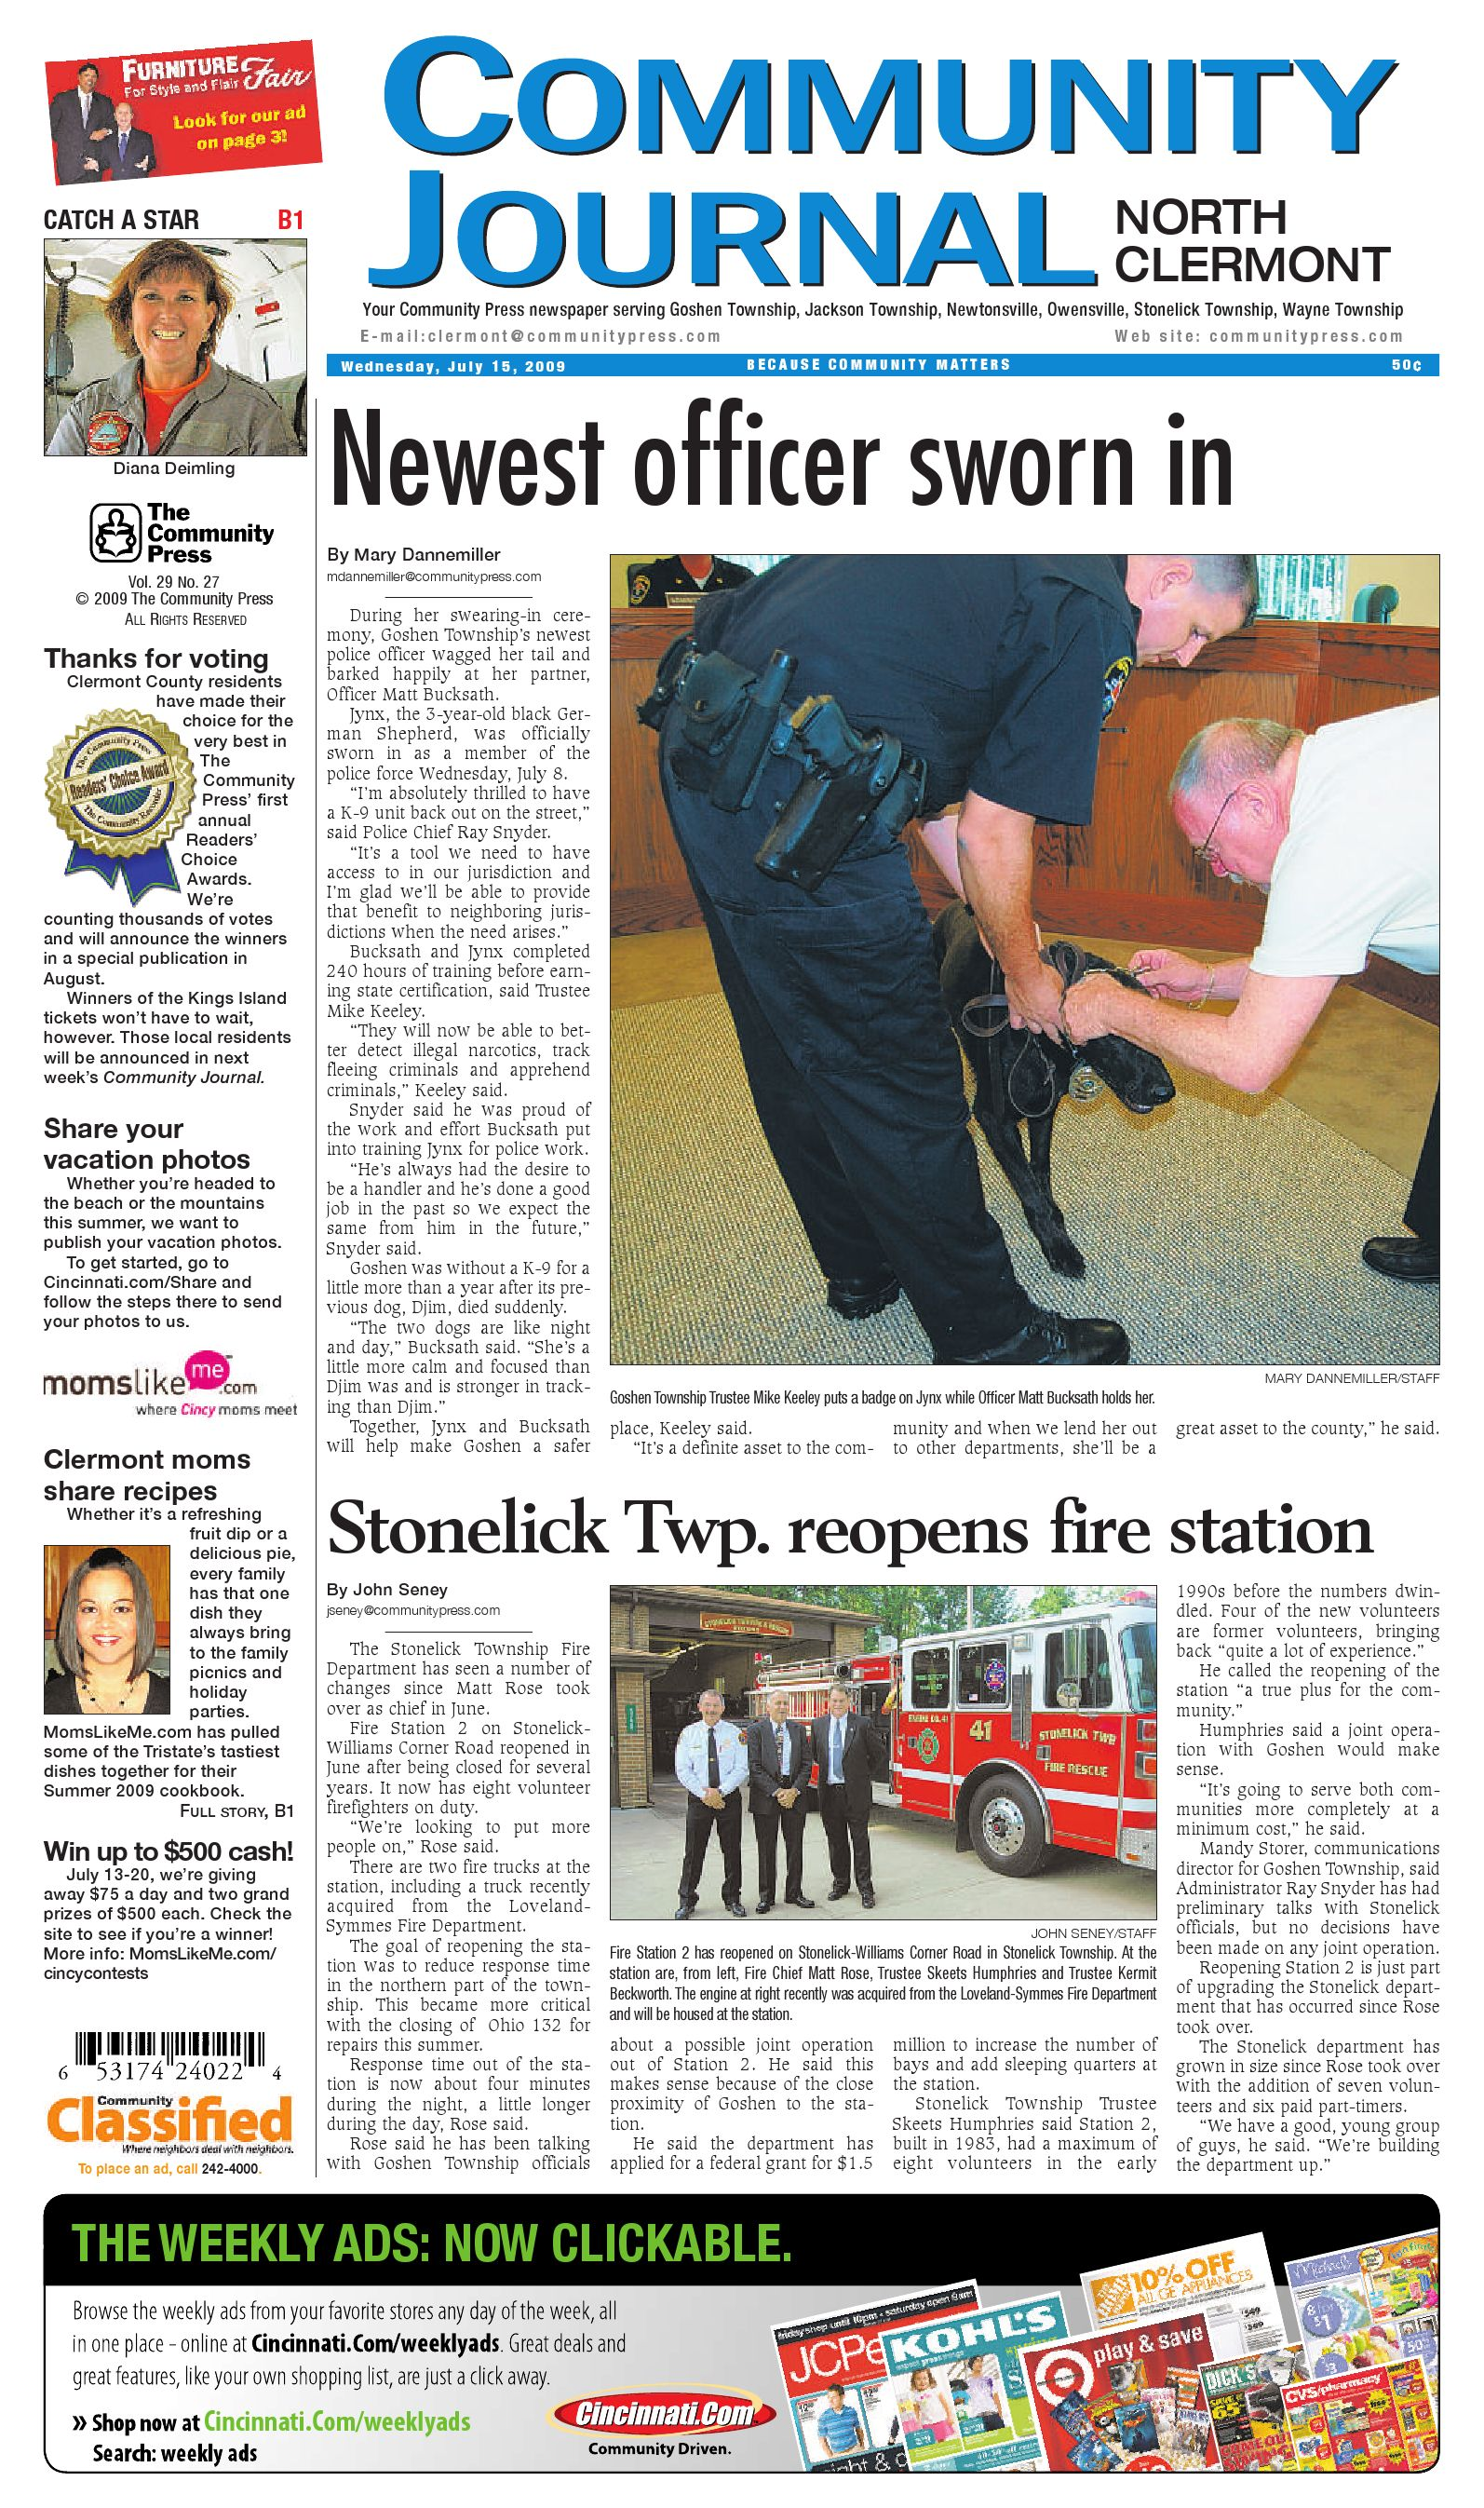 community-journal-north-clermont-071509a by Enquirer Media - issuu ea6562f7a754